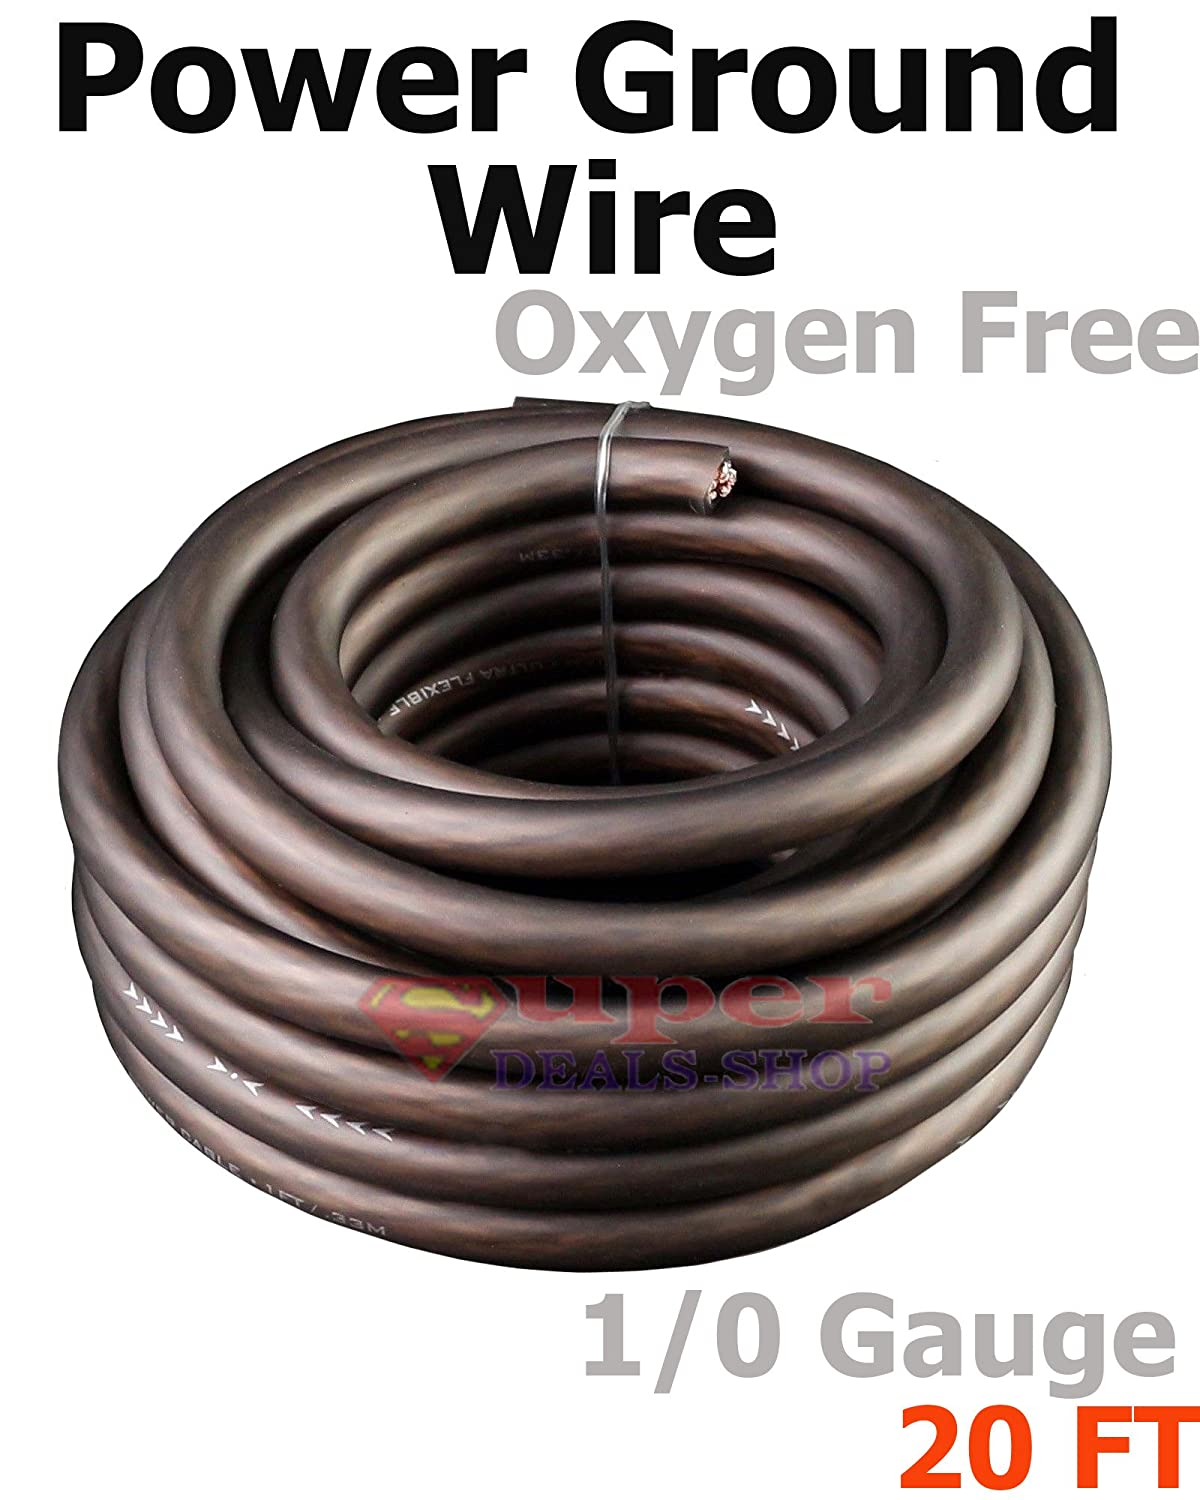 Gauge 100 Oxygen Free Copper Install Power Amplifier Wire Amp Kit 20 Ft Ultra Flexible Black 1 0 Awg Ground Stranded Cable Car Audio Clad Sold By The Foot Super Deals Shop